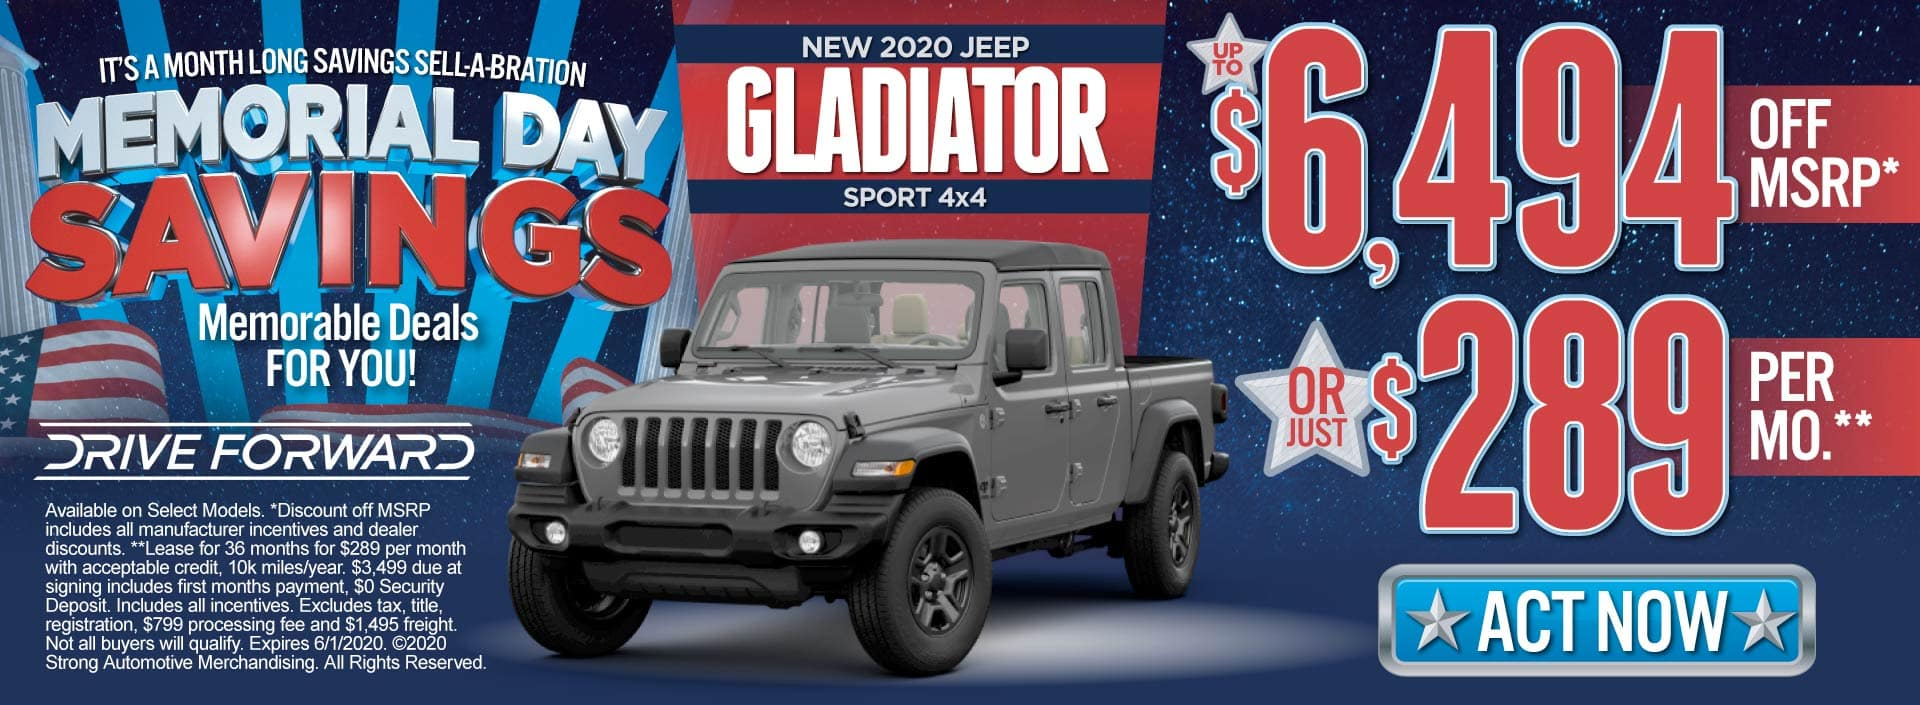 New 2020 Jeep Gladiator - Up to $6,494 off MSRP or just $289 per month - Click to View Inventory